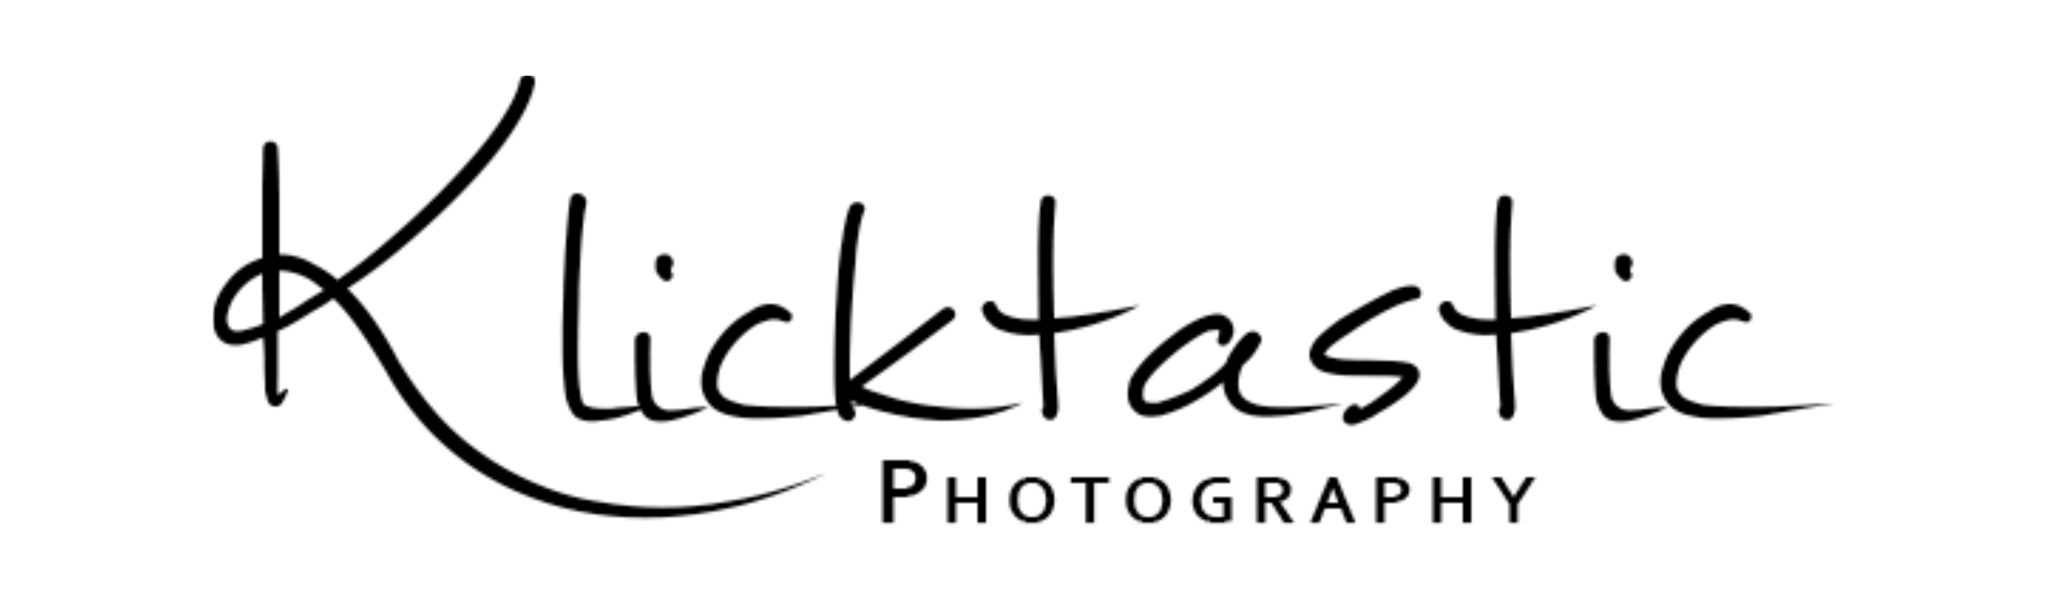 Klicktastic Photography